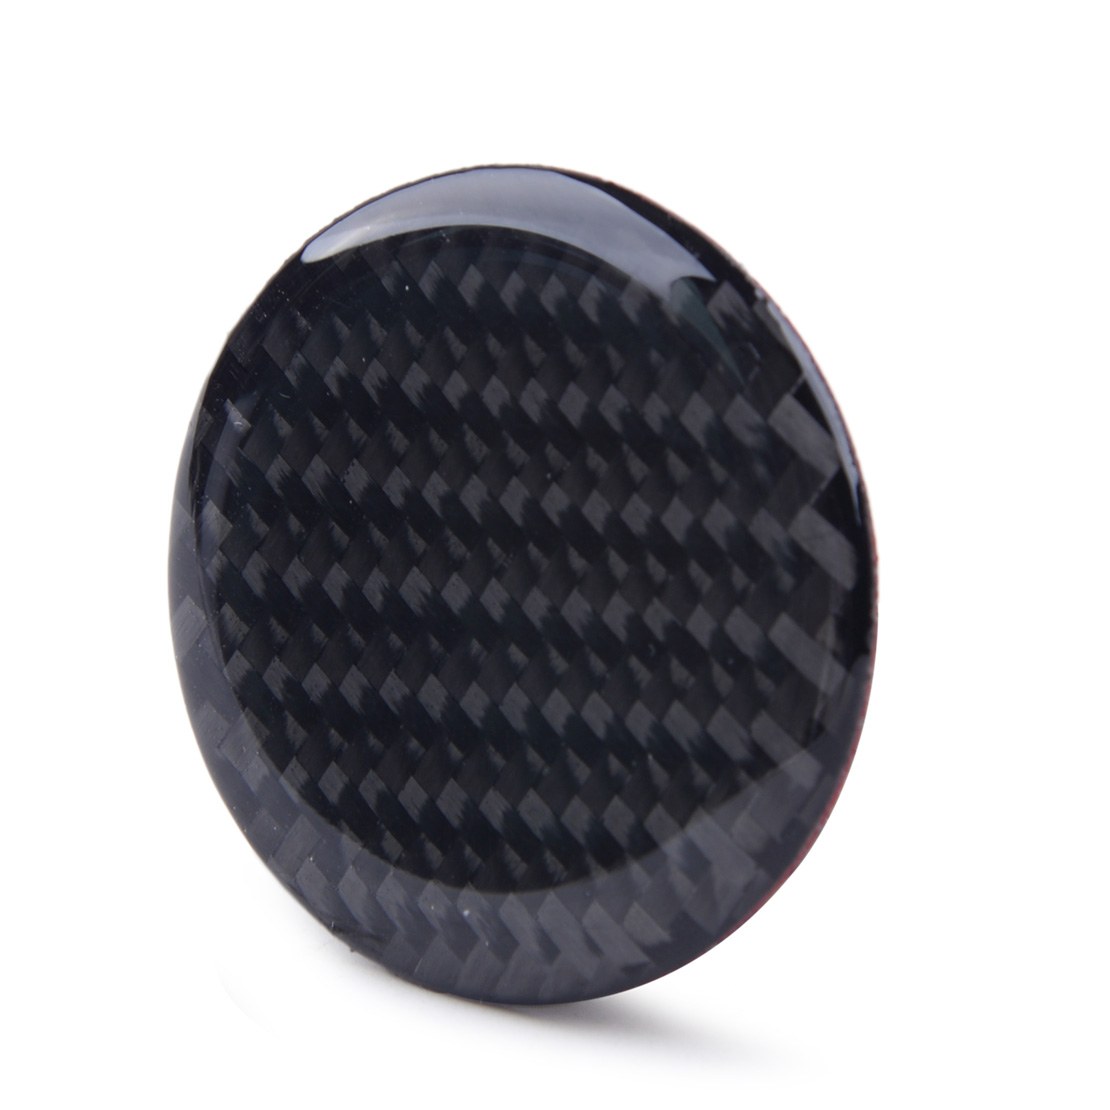 4.0 cm Carbon Fiber Black Car Multi-Media Control Knob Decor Sticker Fit For Audi A3 S3 8V 2014 2015 2016 2017 2018 2019 image